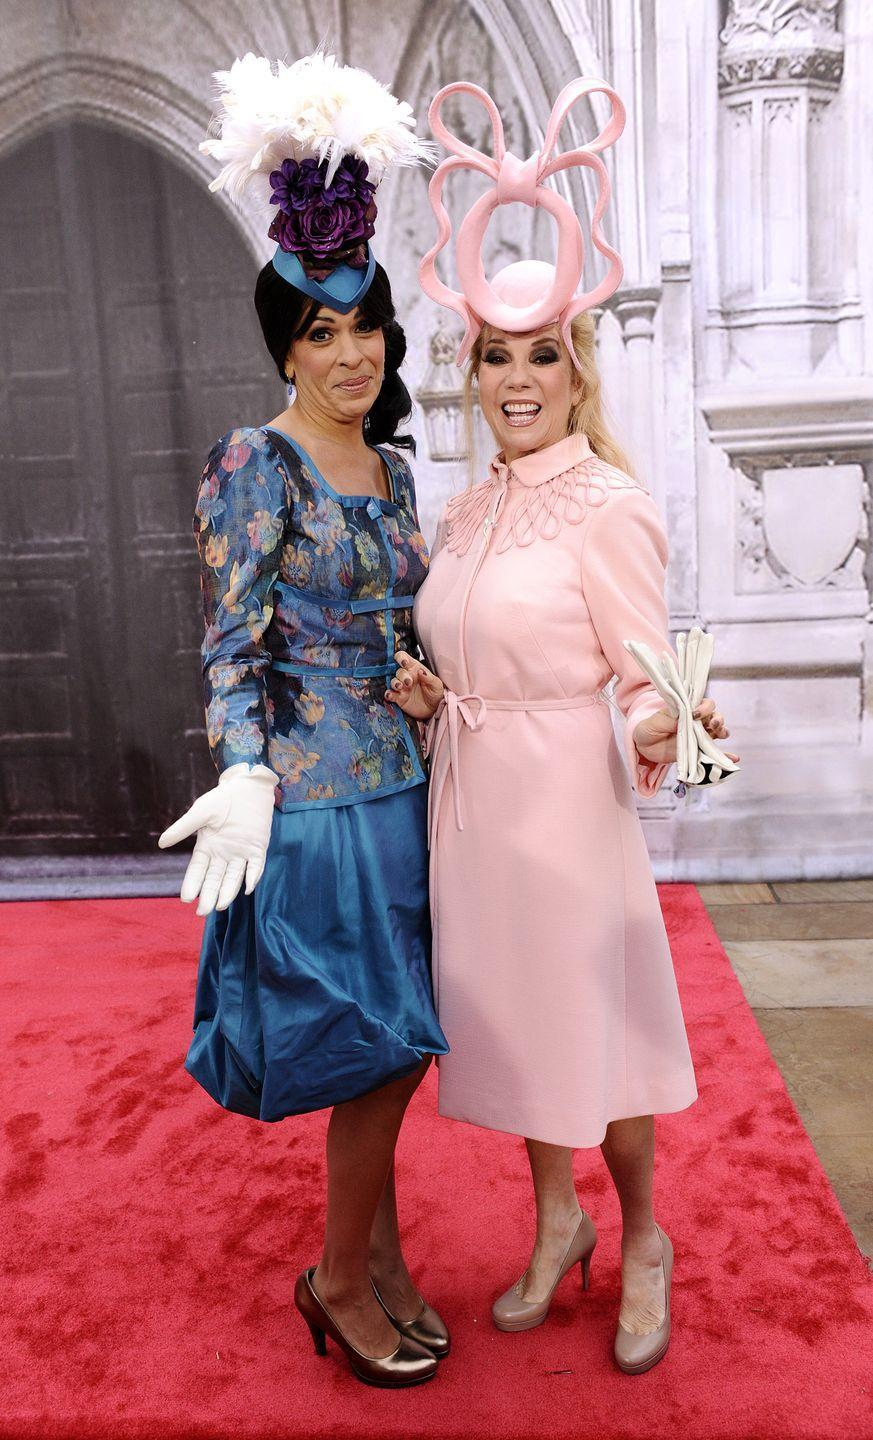 "<p>The cohosts copied the Princesses of Yorks' outfits (and <a href=""https://www.goodhousekeeping.com/life/a22626563/princess-eugenie-beatrice-kate-middleton-hat-wedding/"" rel=""nofollow noopener"" target=""_blank"" data-ylk=""slk:now-infamous hats"" class=""link rapid-noclick-resp"">now-infamous hats</a>) from their cousin William's 2011 wedding.<br></p>"